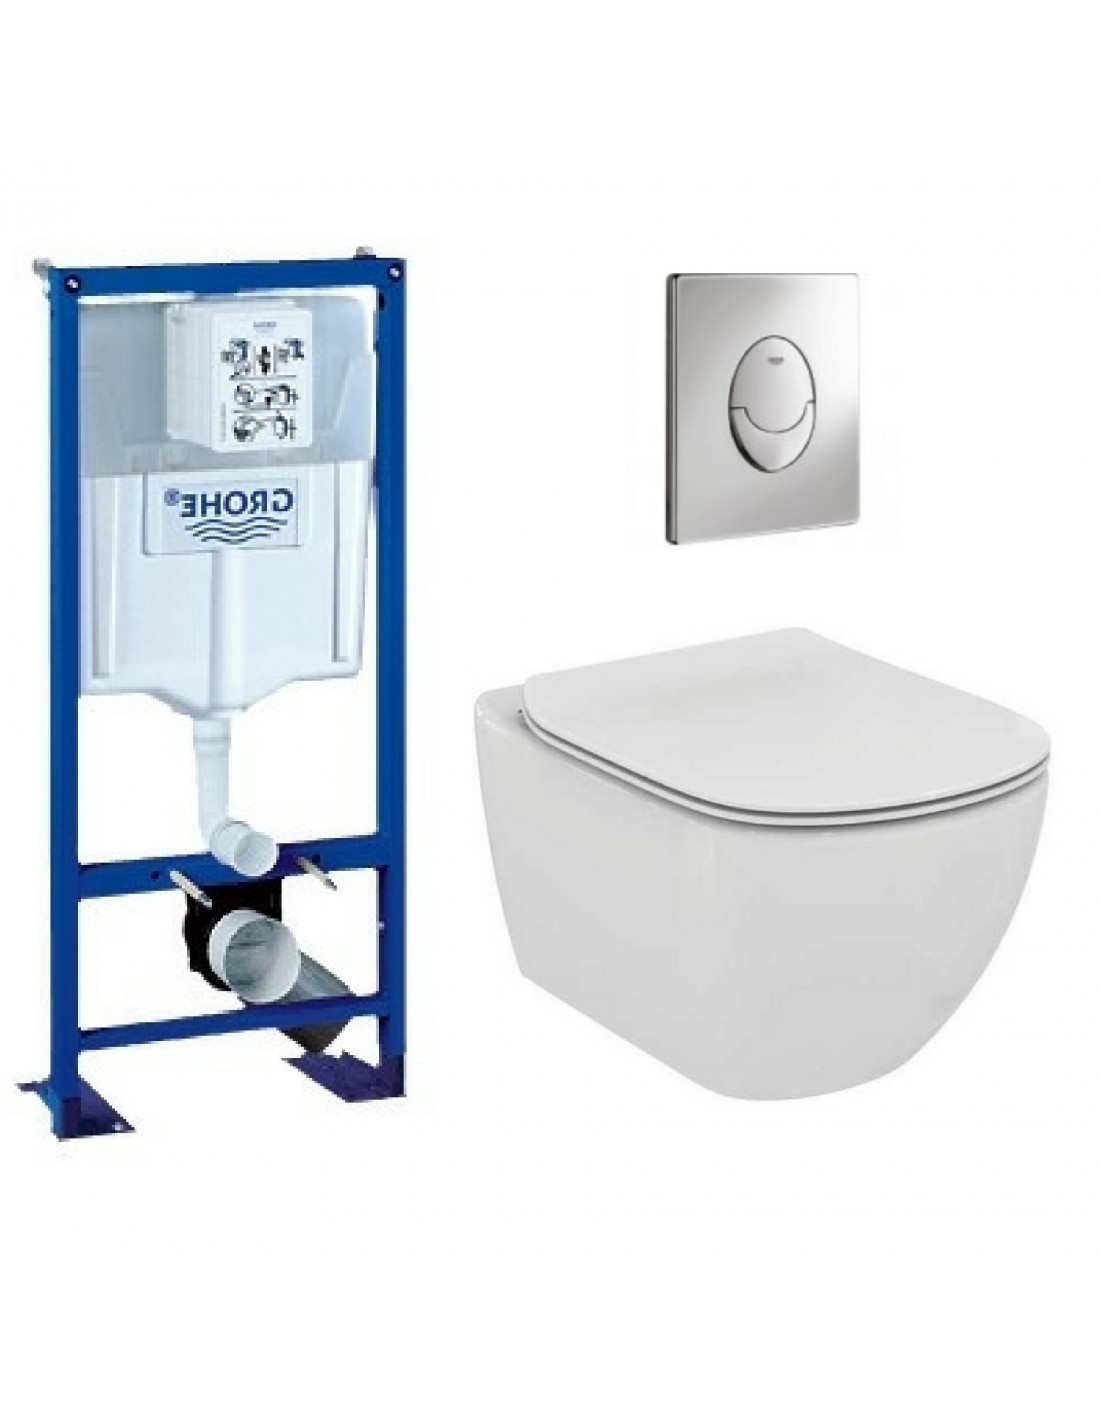 Wc Suspendu Ideal Standard : pack wc grohe cuvette sans bride tesi ideal standard ~ Pogadajmy.info Styles, Décorations et Voitures